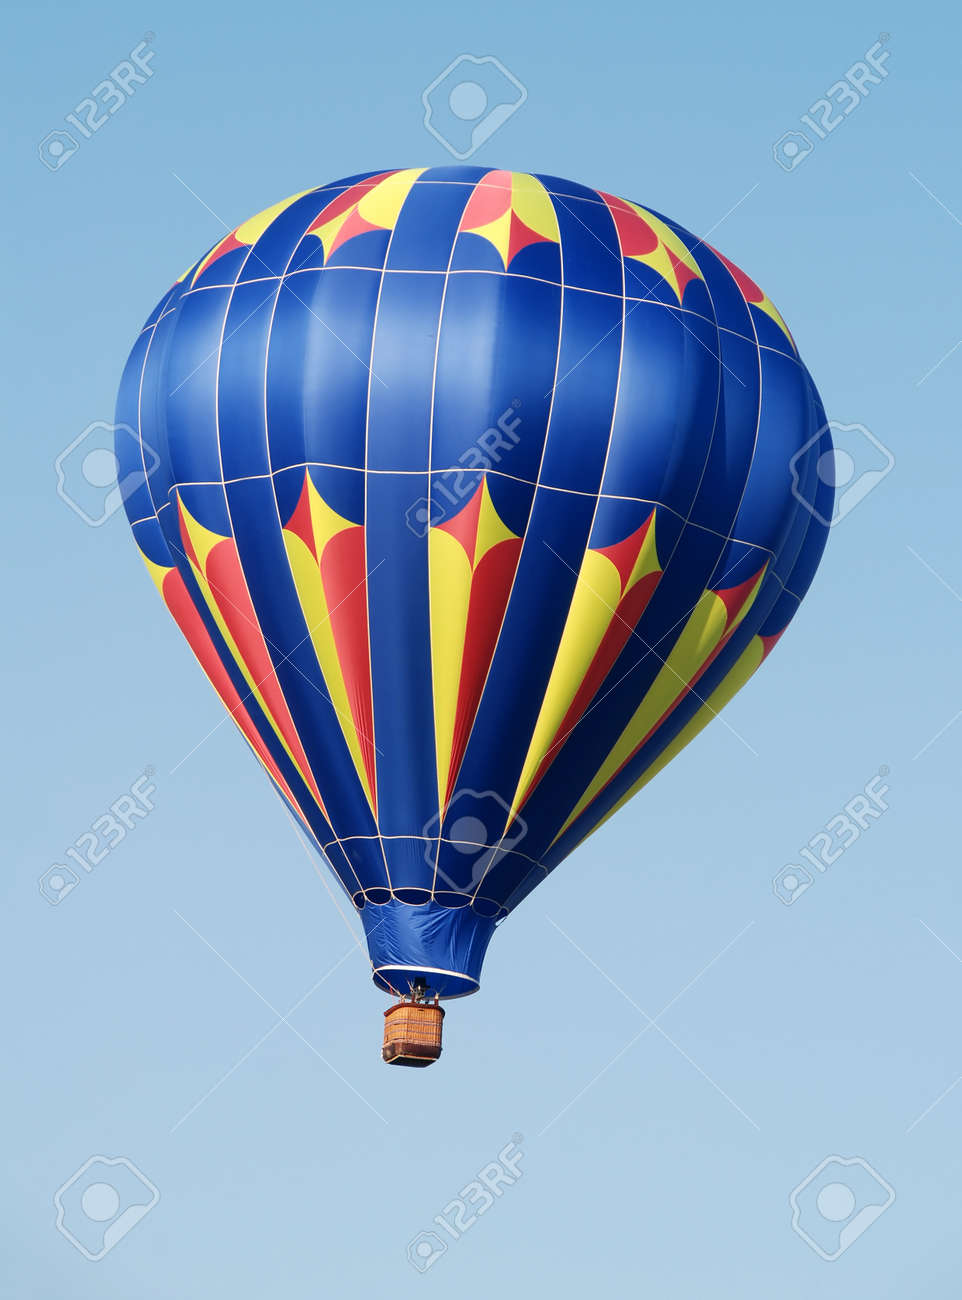 Colorful hot air balloon soaring in the sky Stock Photo - 9953003